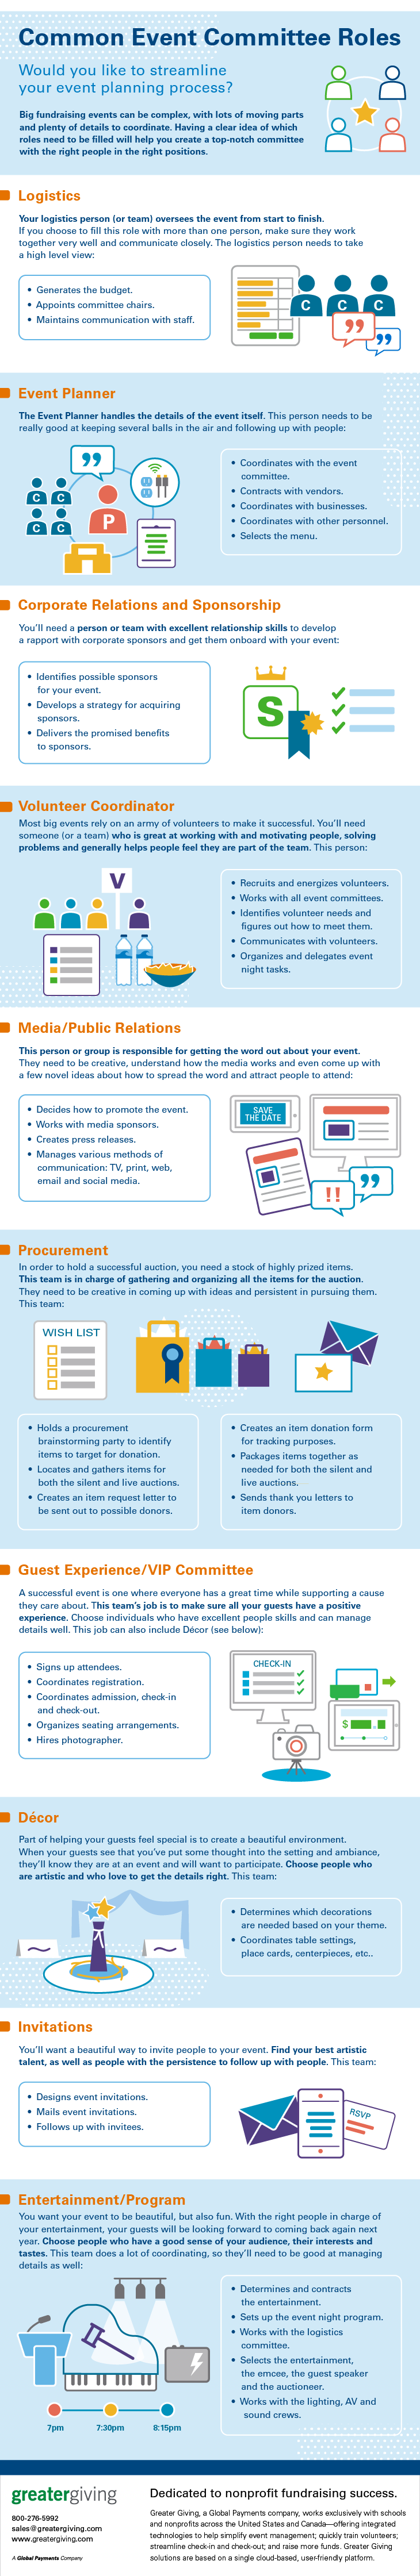 Common Event Committee Roles [INFOGRAPHIC]